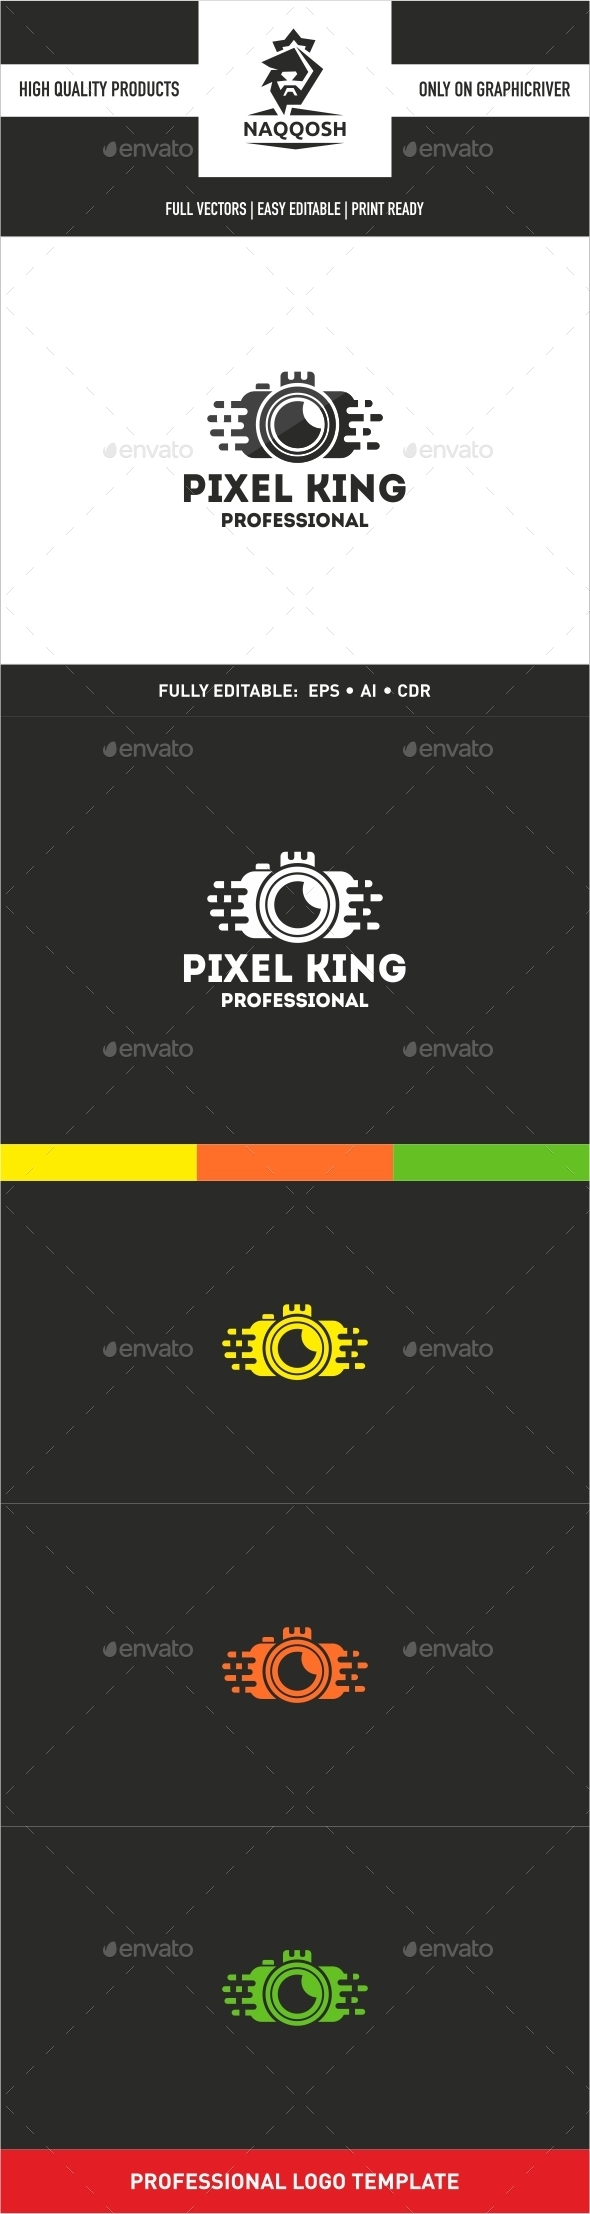 GraphicRiver Pixel King 9938738